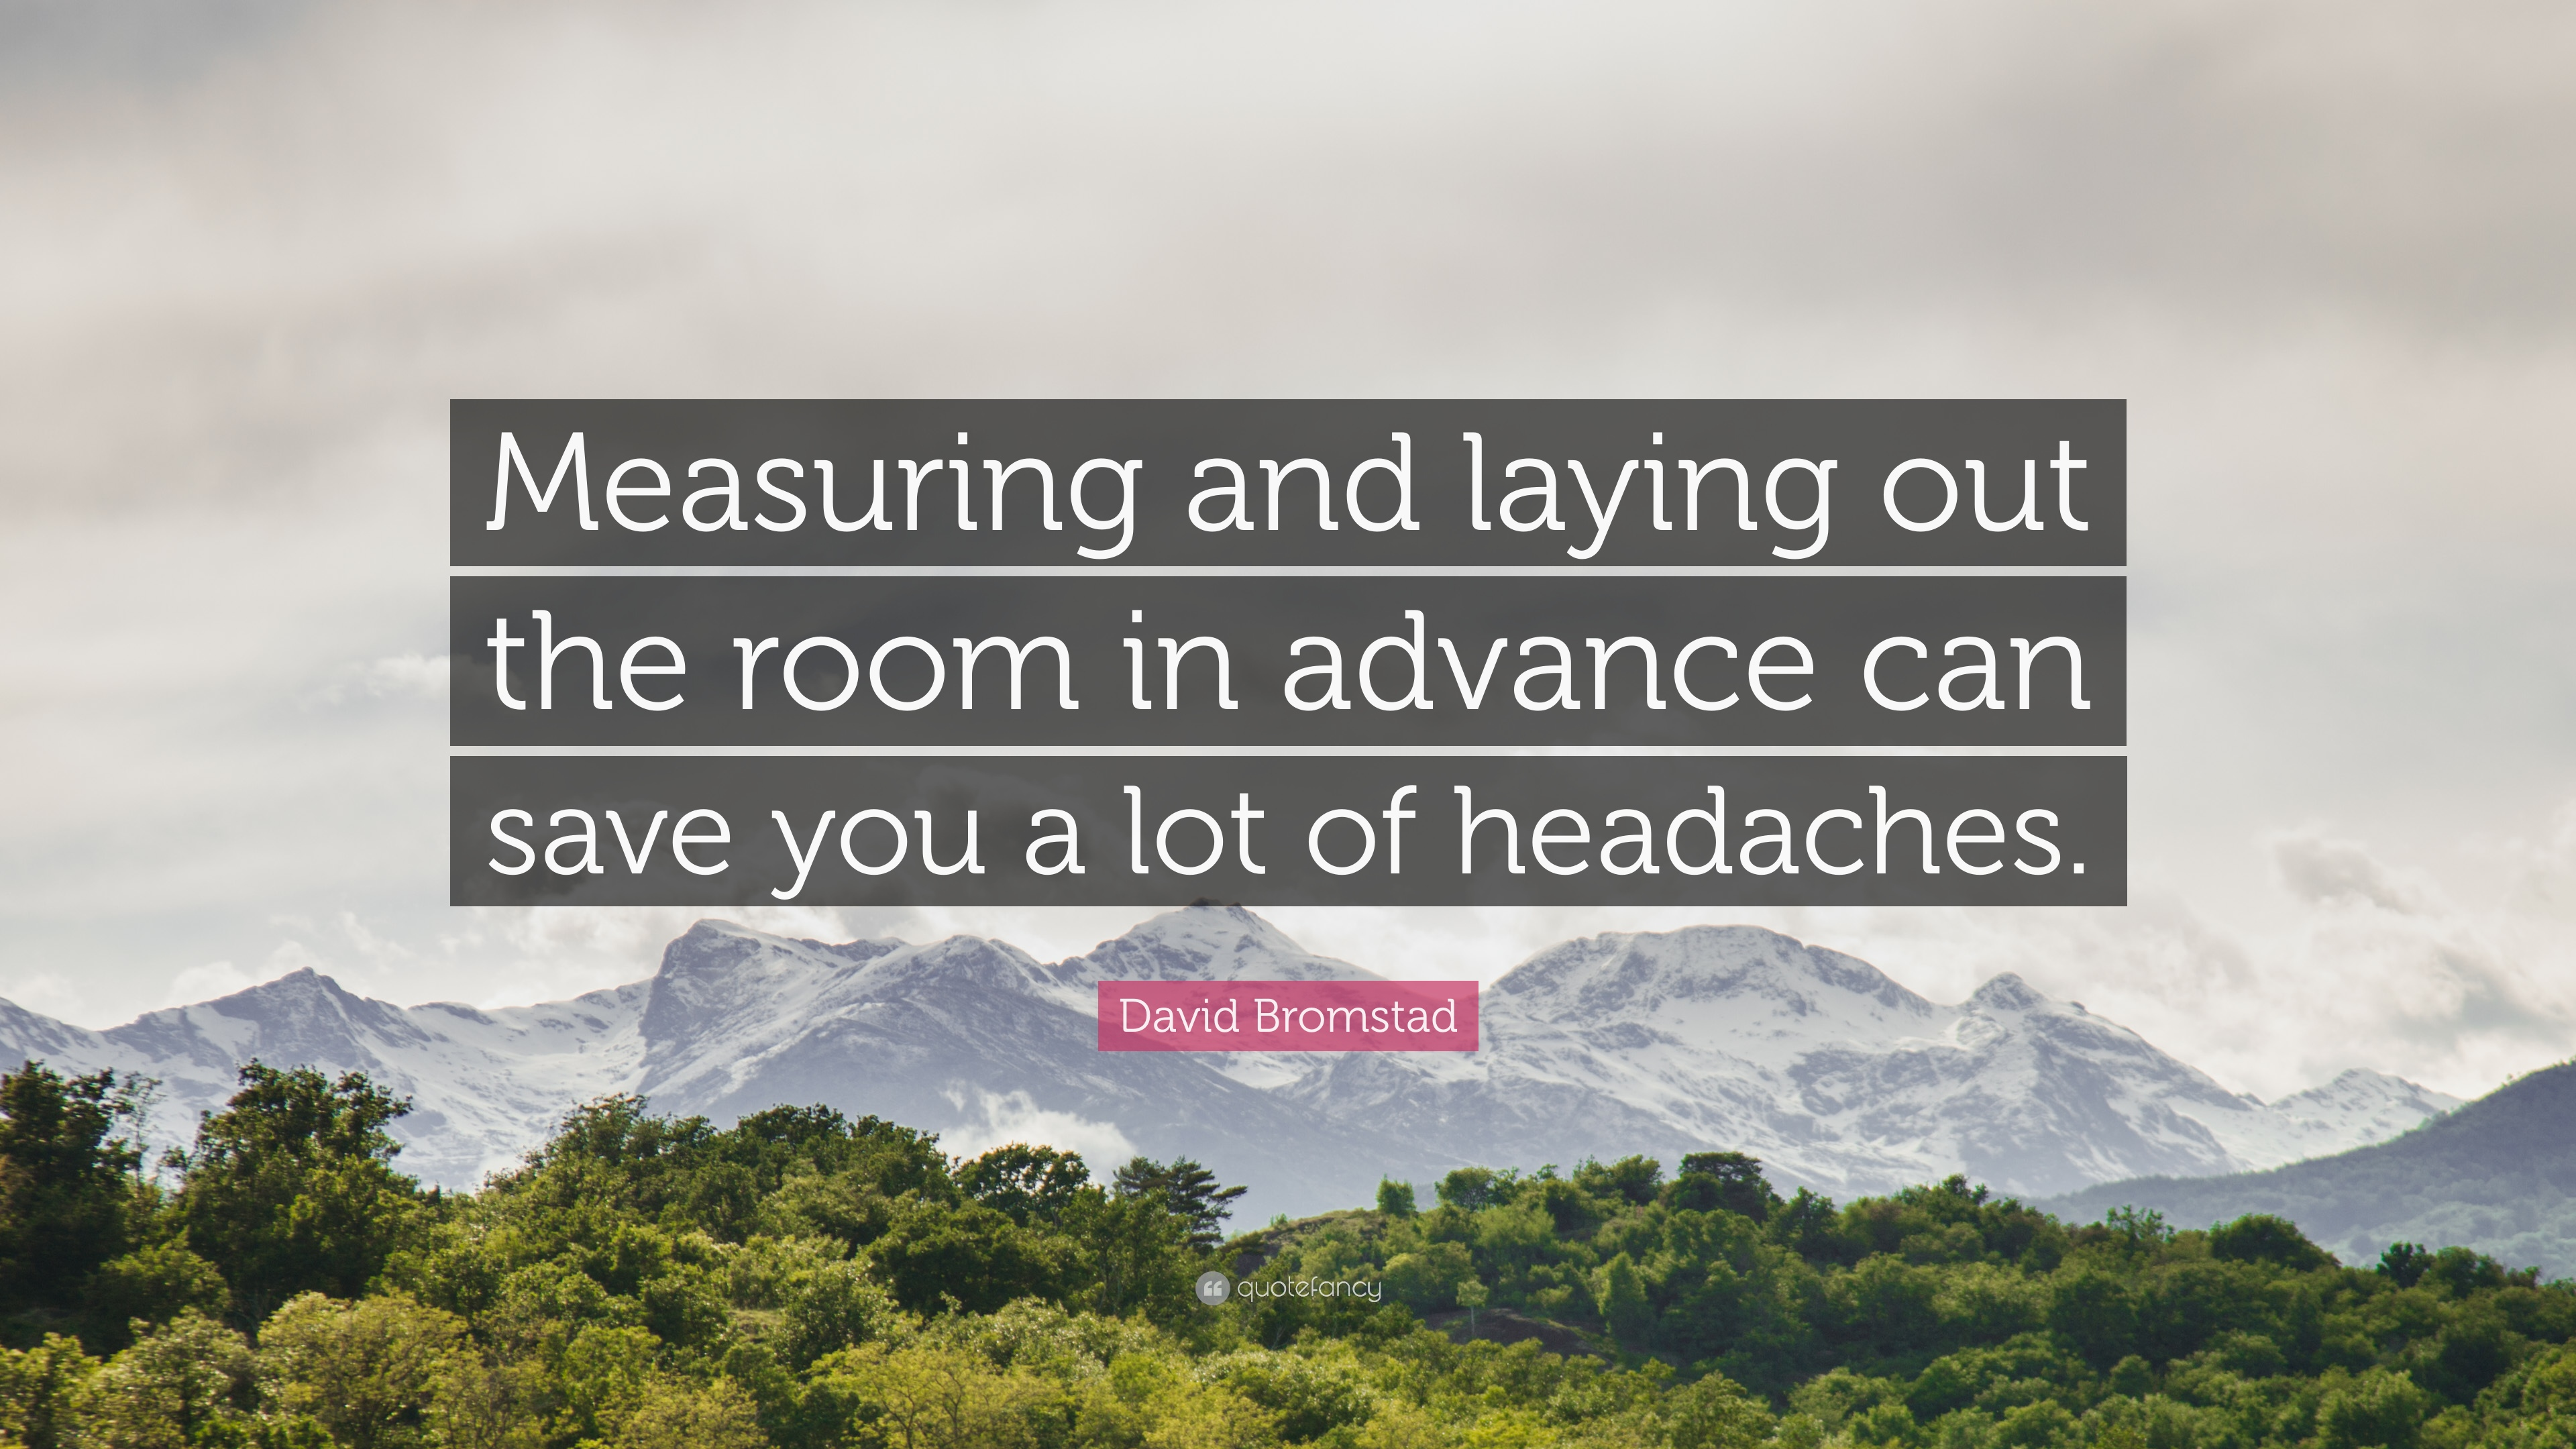 David Bromstad Quote Measuring And Laying Out The Room In Advance Can Save You